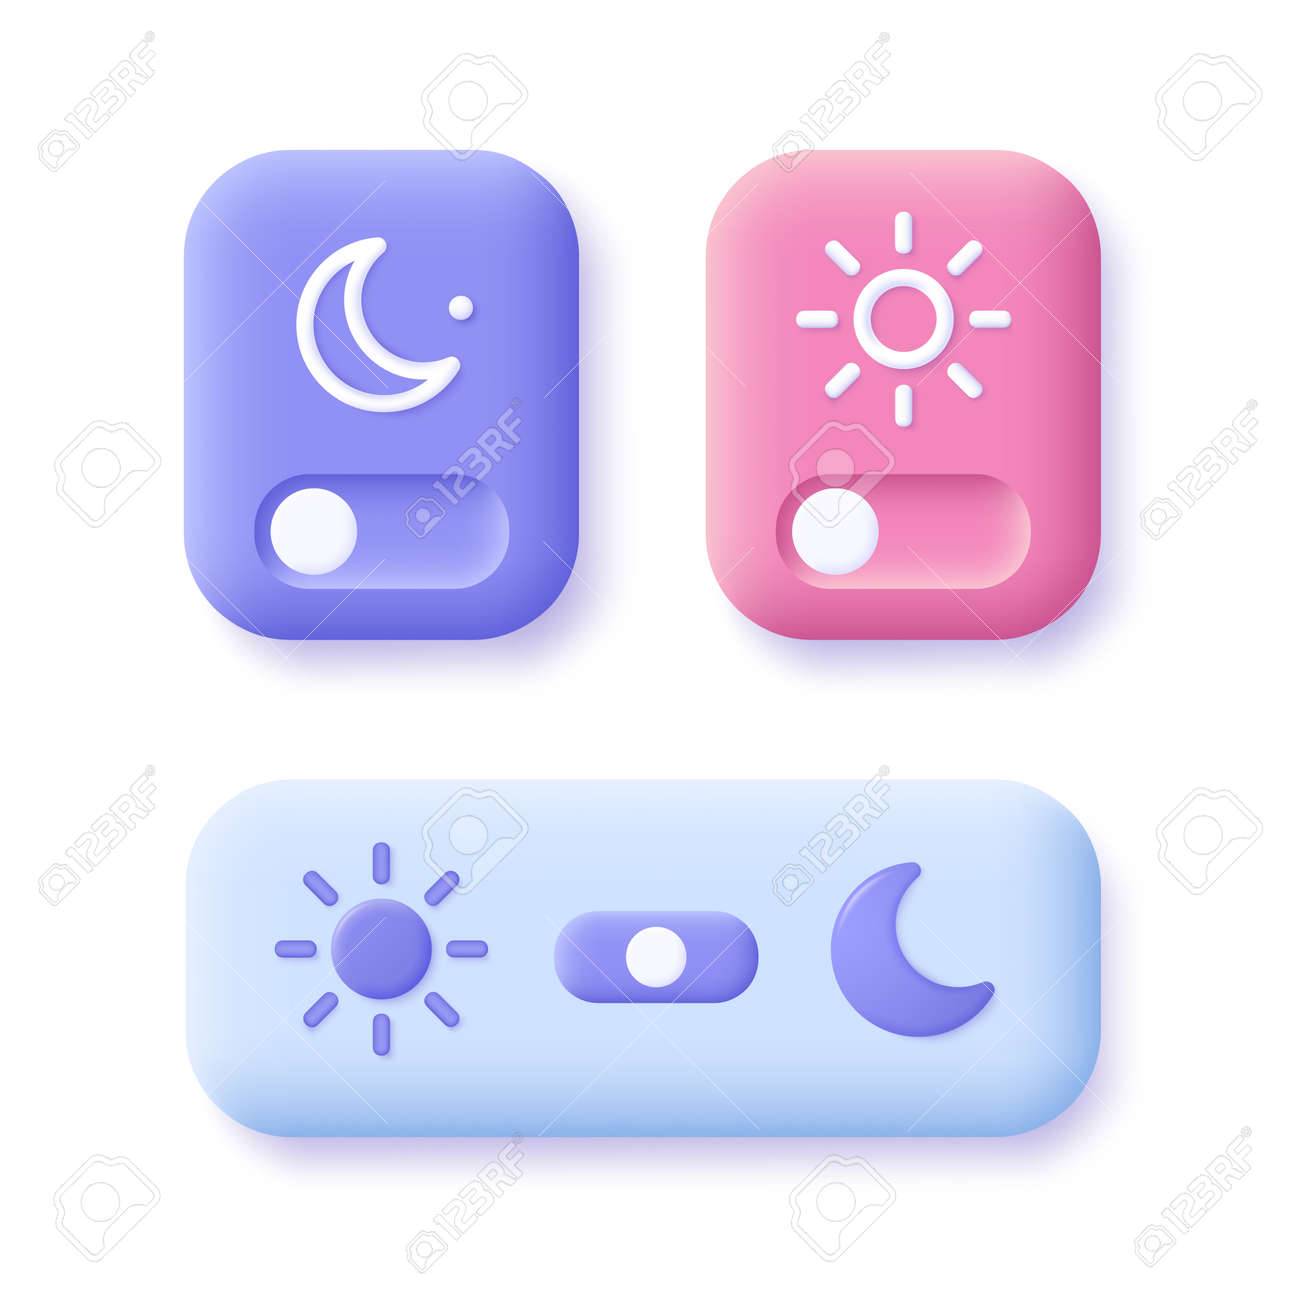 Day and night mode switch icon set. Interface ui symbol concept. On Off or Light and Dark Buttons. 3d vector illustration. - 168116912